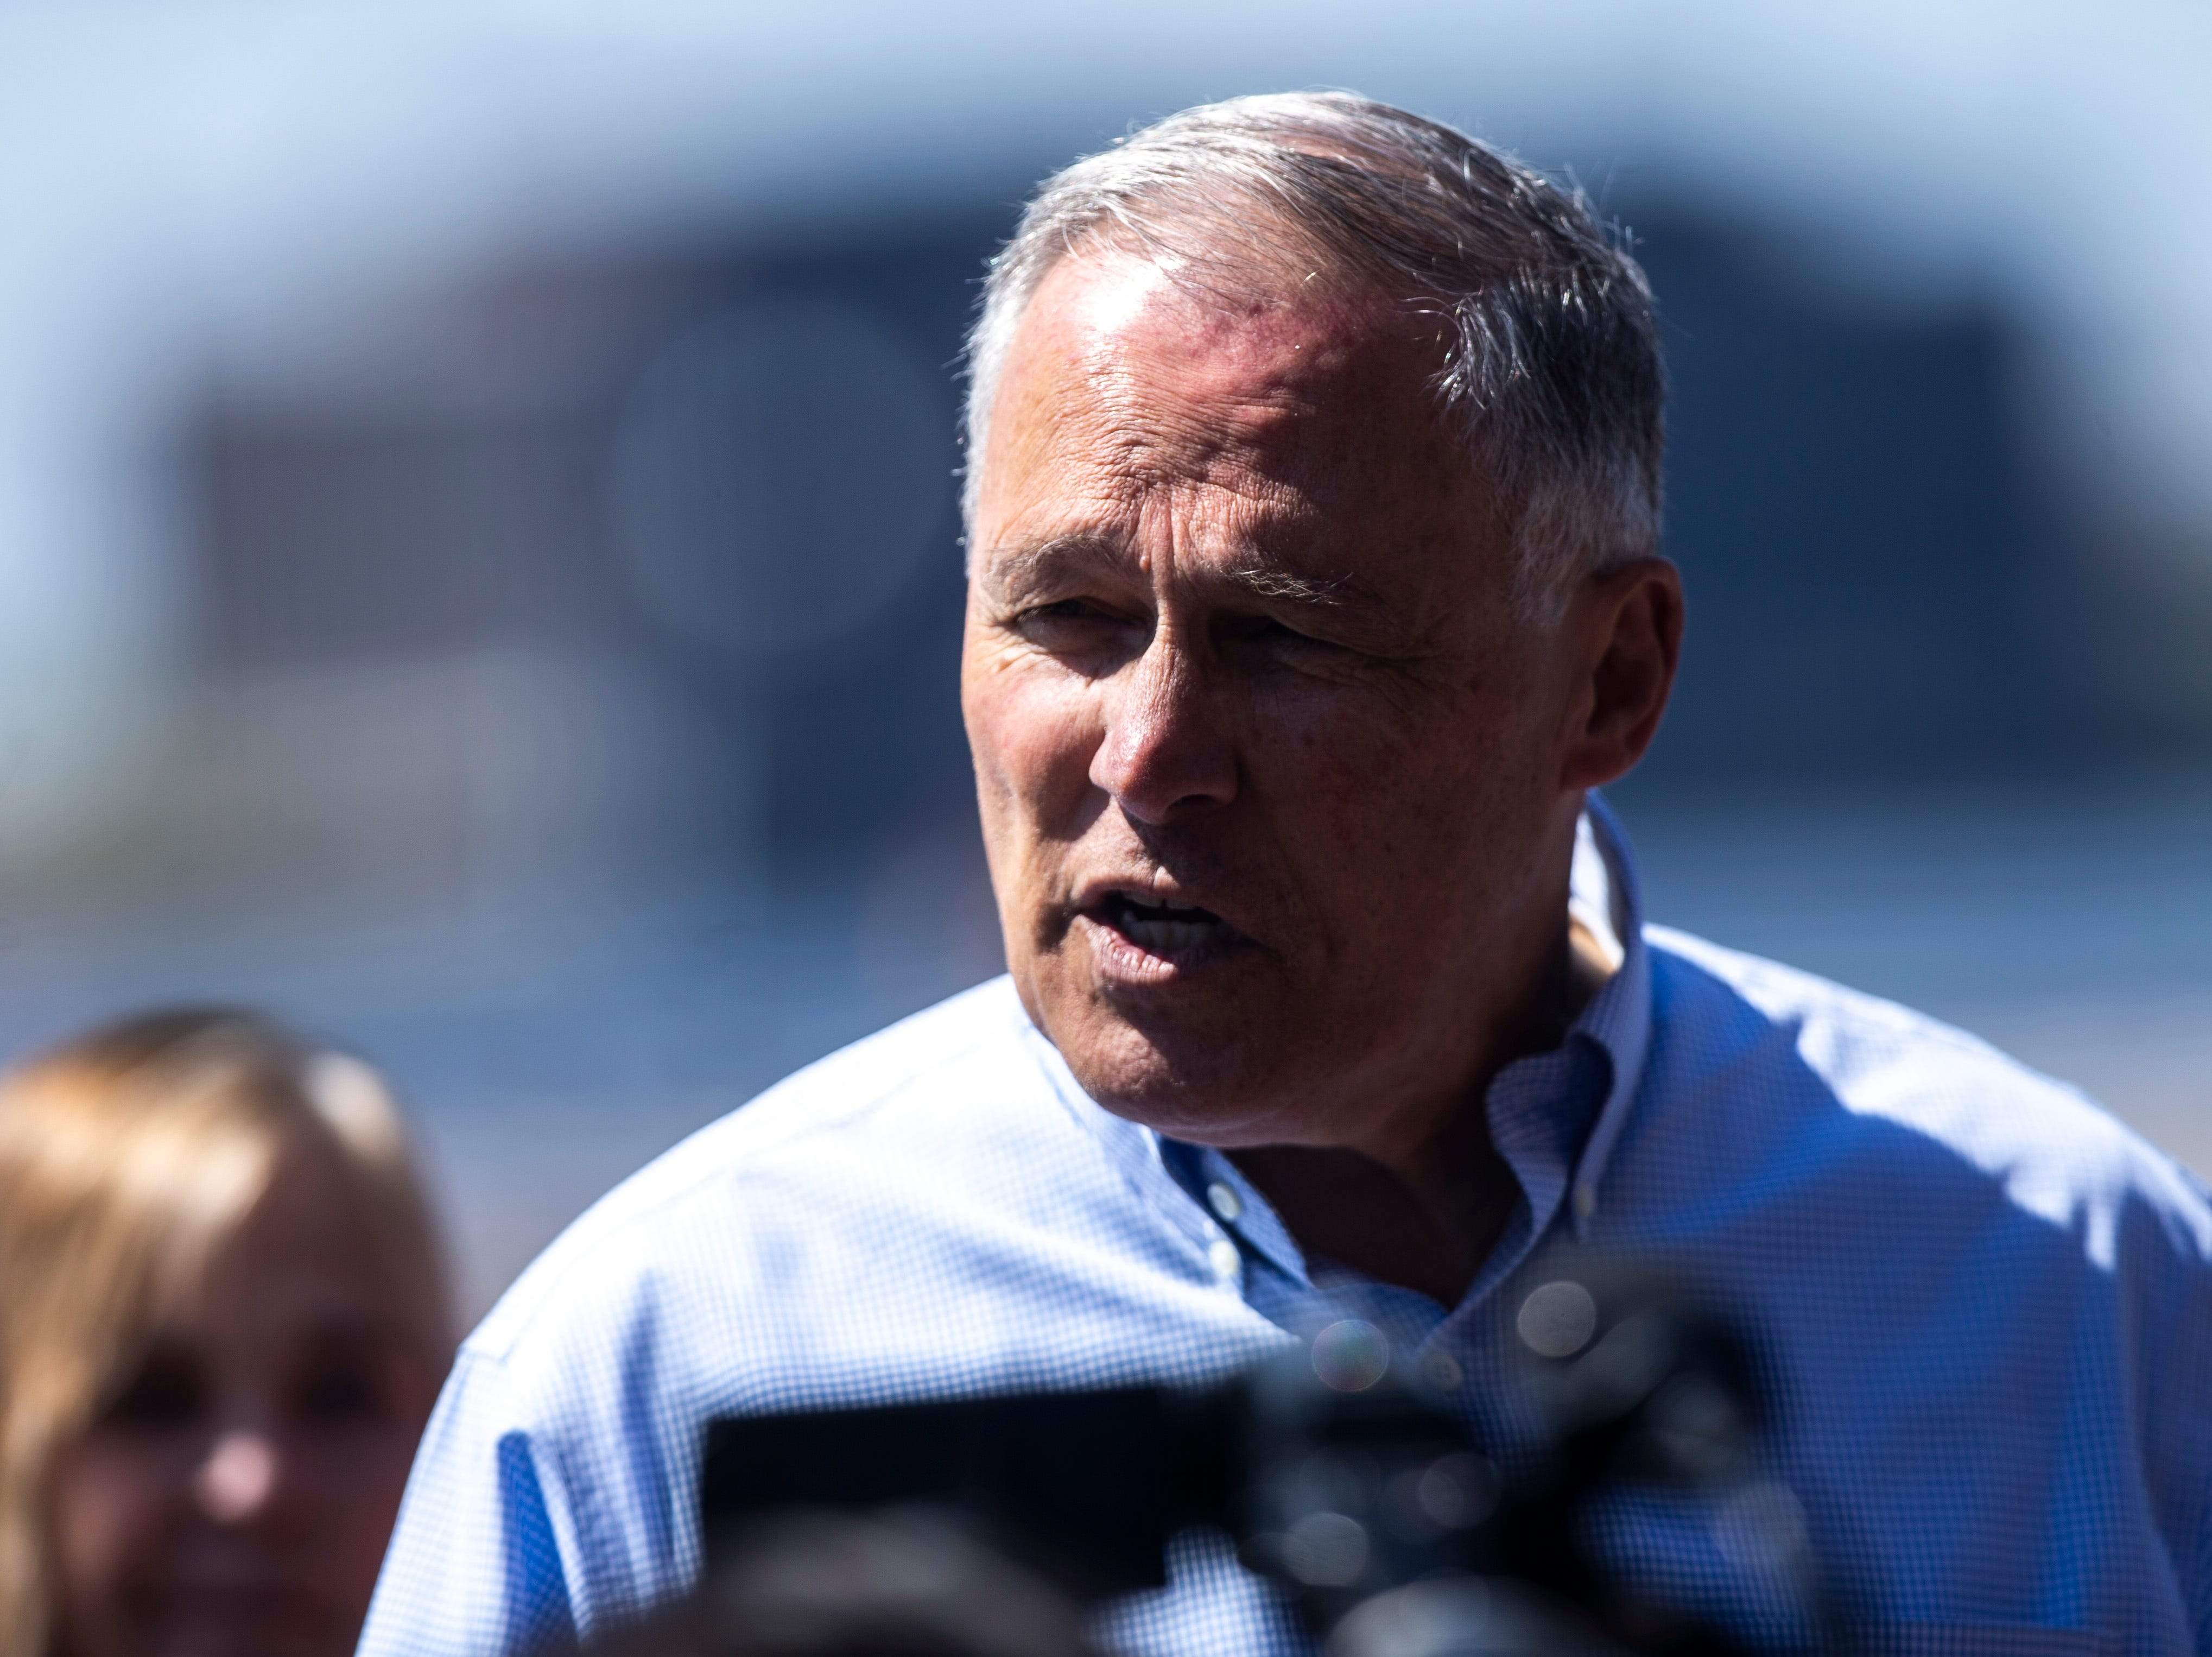 Washington Gov. Jay Inslee speaks to reporters after touring areas impacted by floodwaters, Wednesday, May 15, 2019, in downtown Davenport, Iowa.